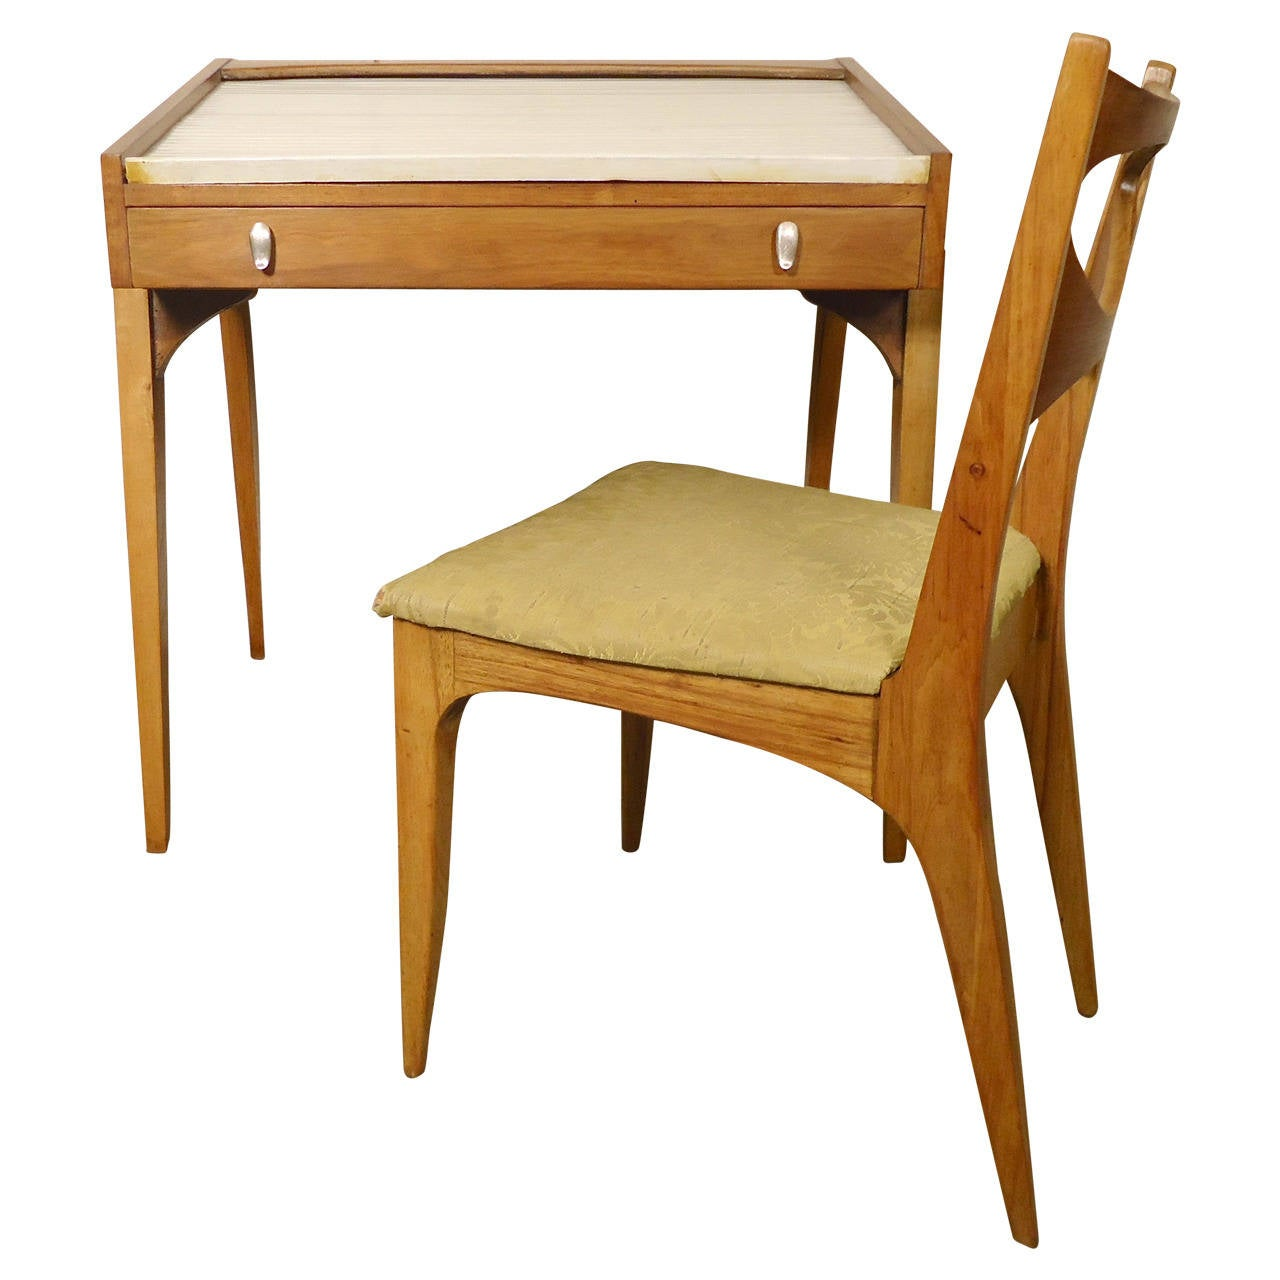 Vintage Roll Top Desk With Beautifully Sculpted Teak Body And Brass Trim  Designed By Drexel,